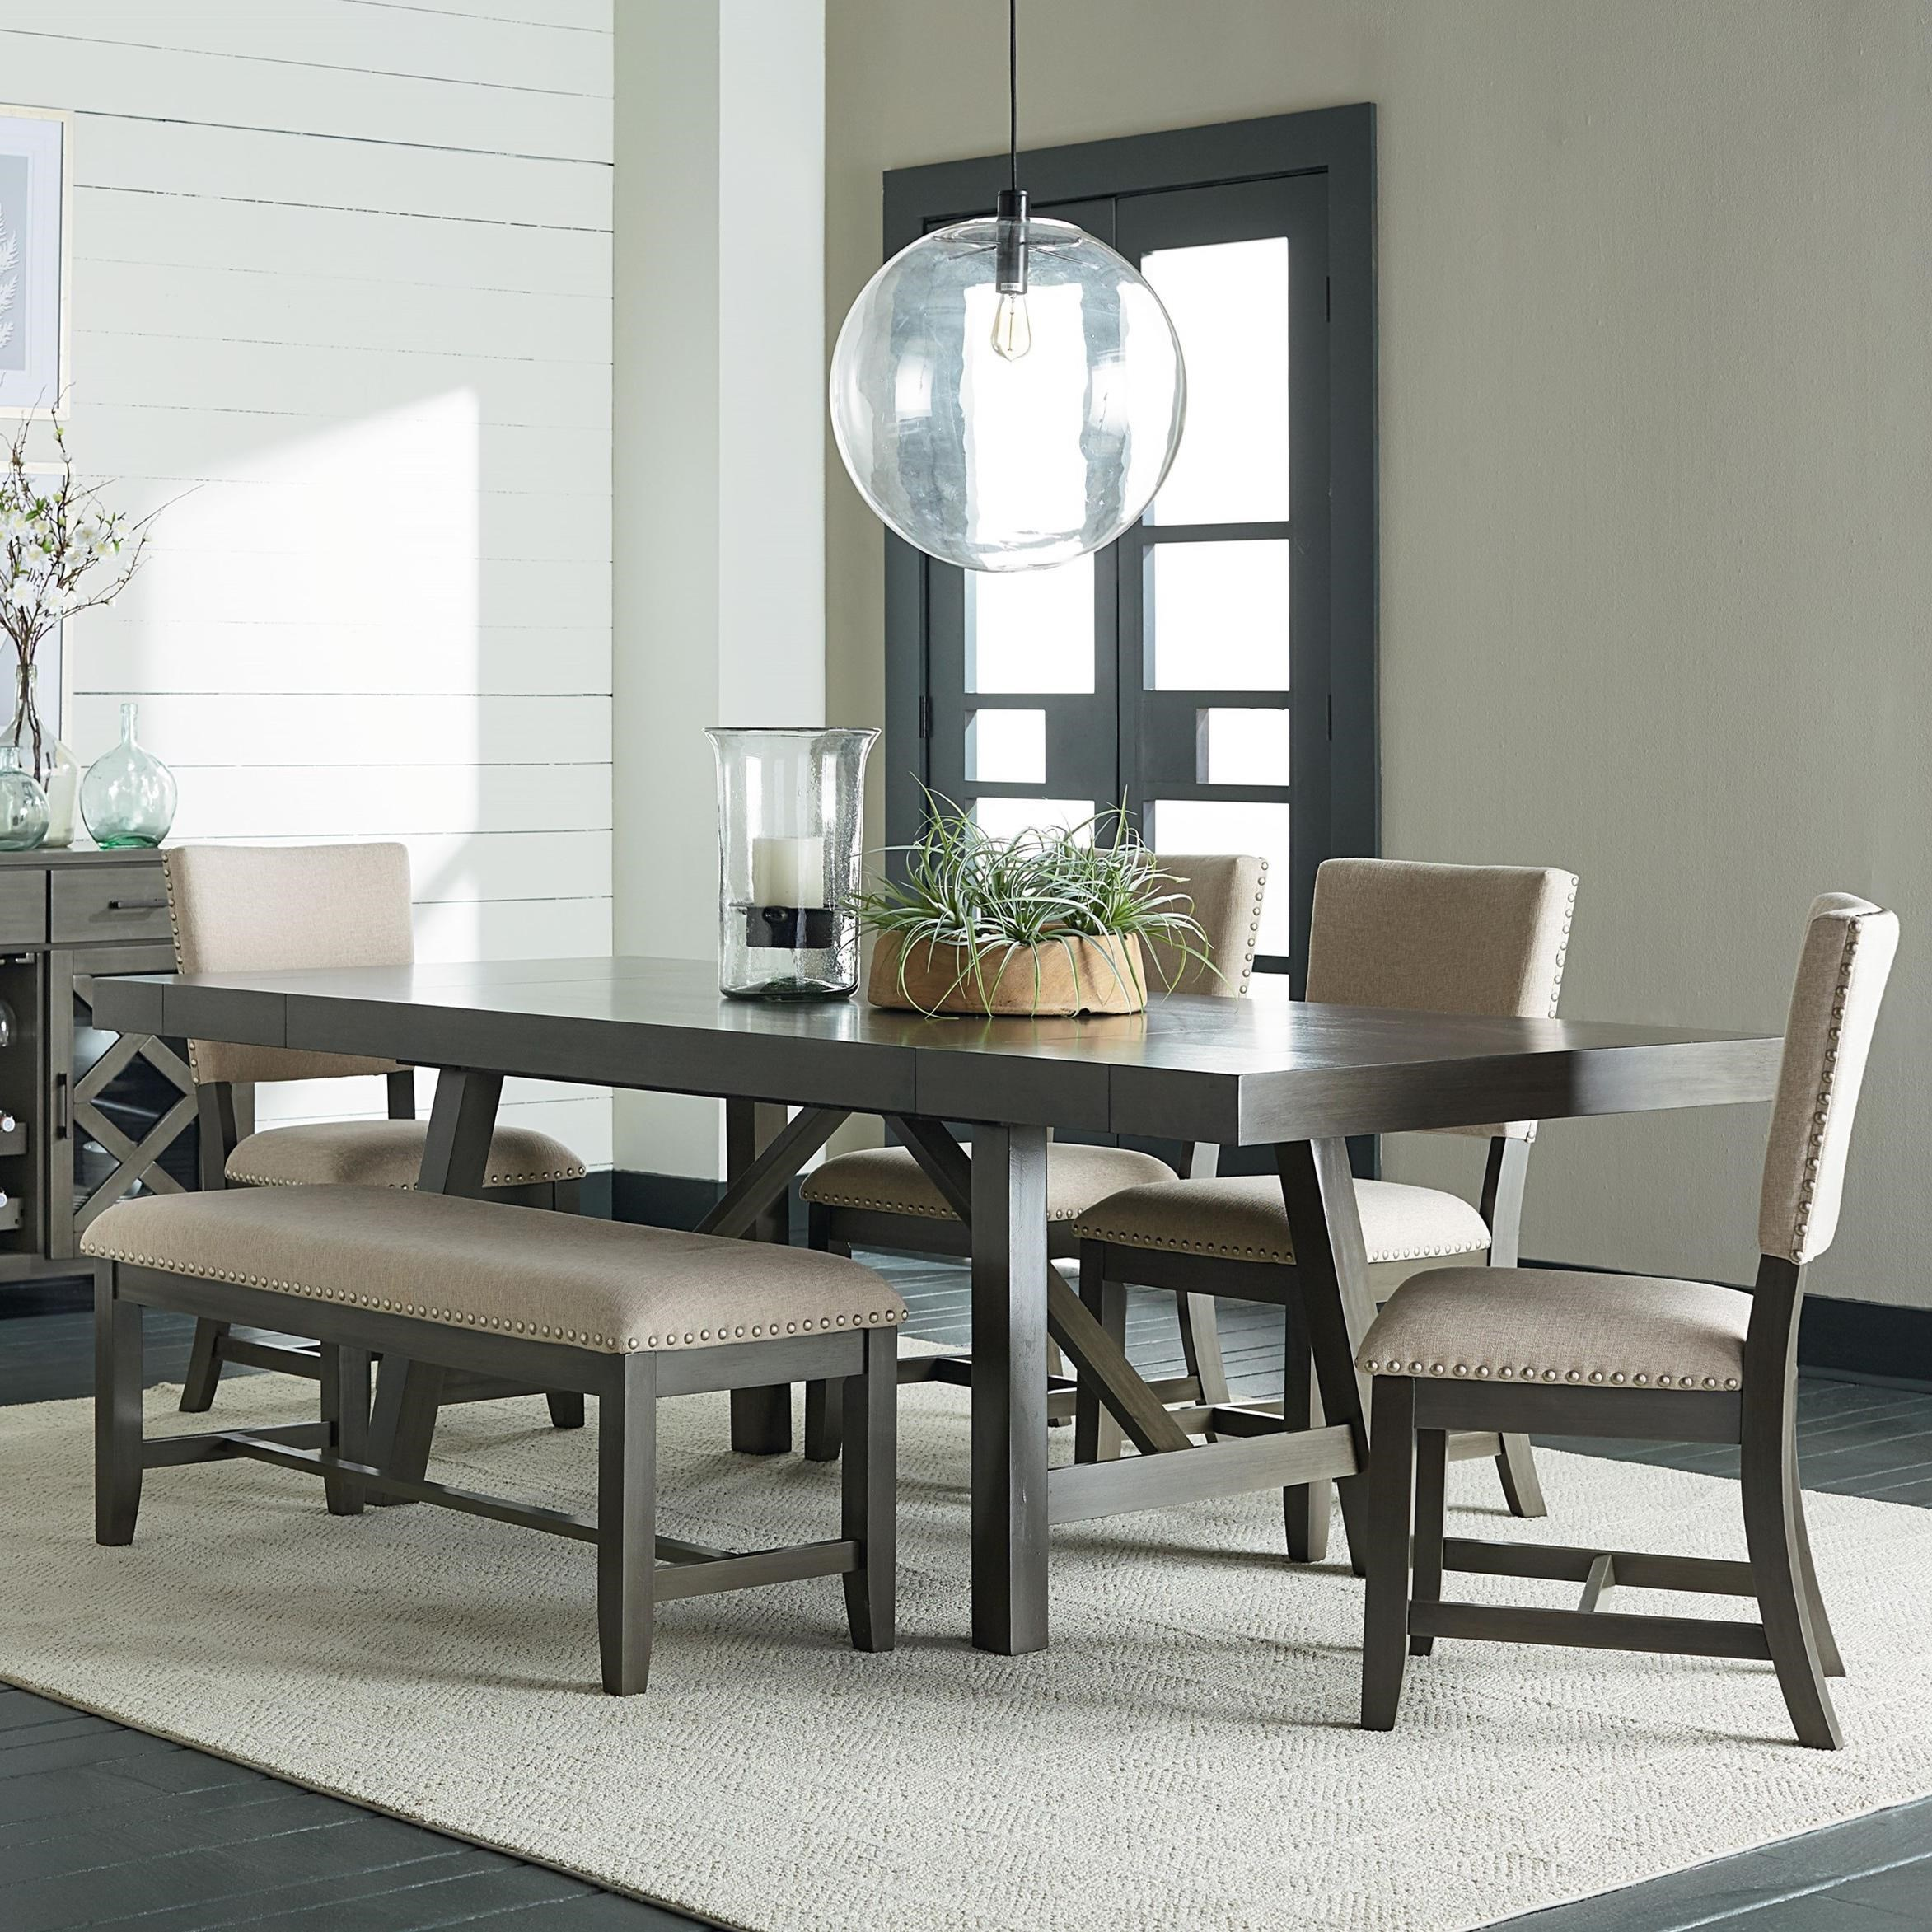 6 Piece Trestle Table Dining Set With Dining Bench By